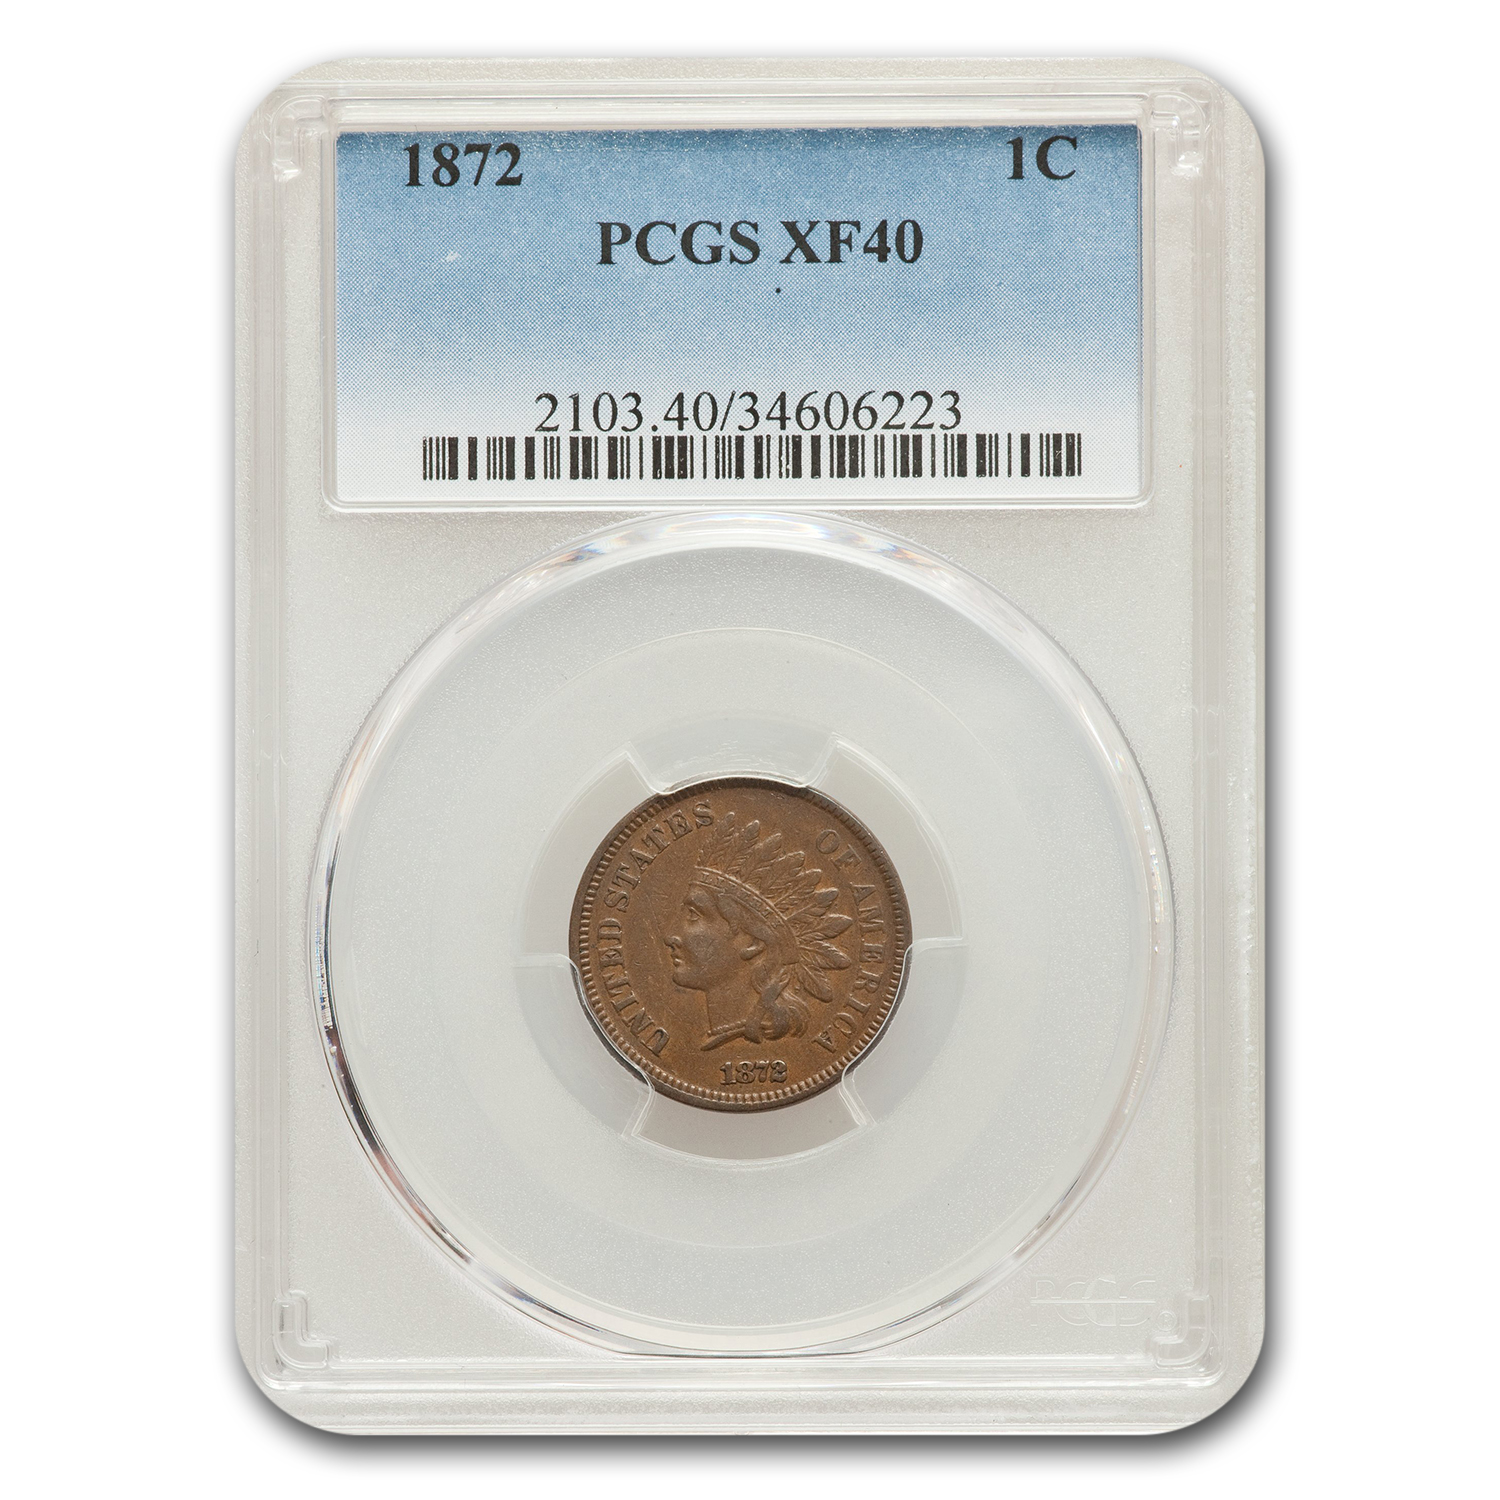 1872 Indian Head Cent XF-40 PCGS